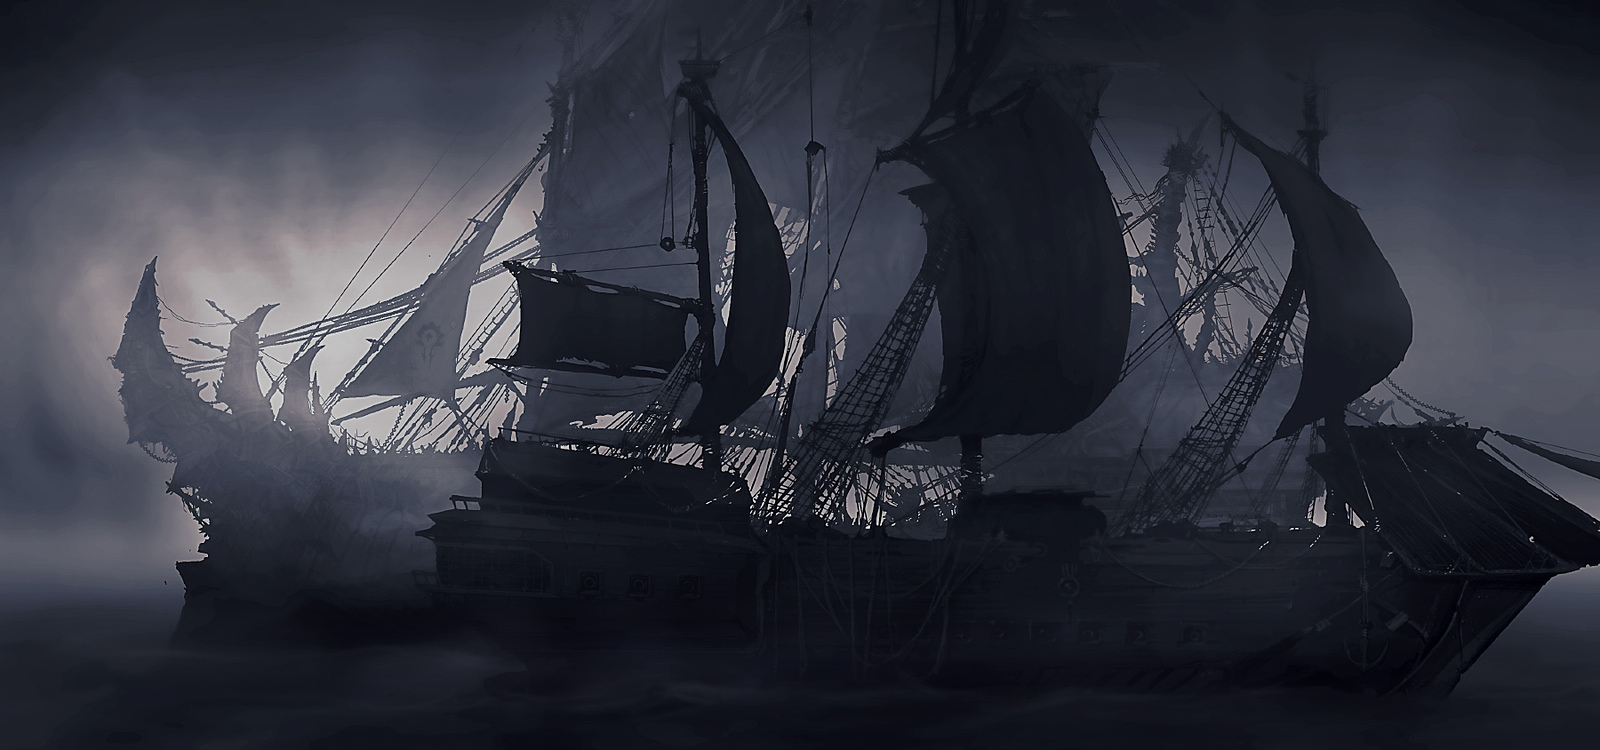 ghost pirate ships art